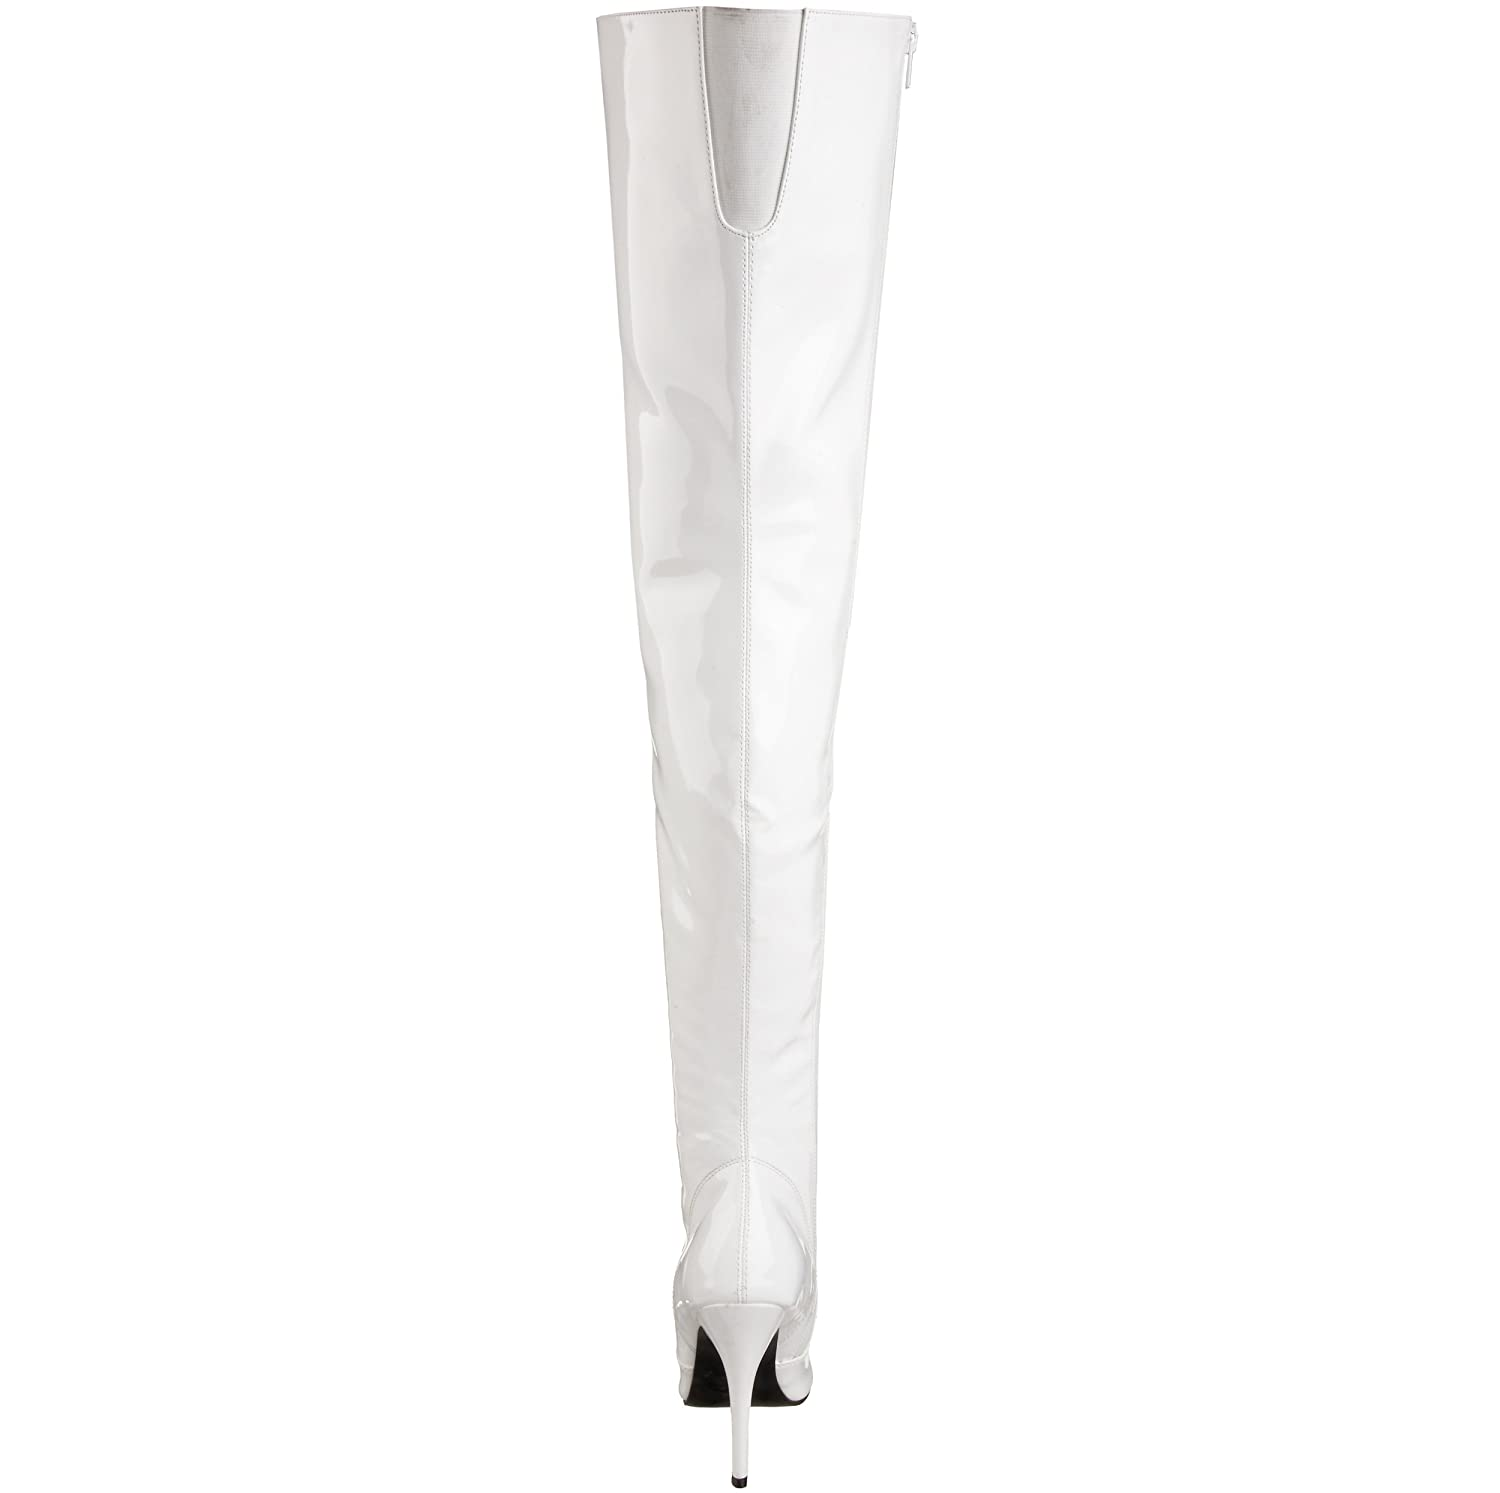 Pleaser Women's Seduce-3010 B(M) Thigh High Boot B000GE79XQ 6 B(M) Seduce-3010 US|White Patent 88e7a5